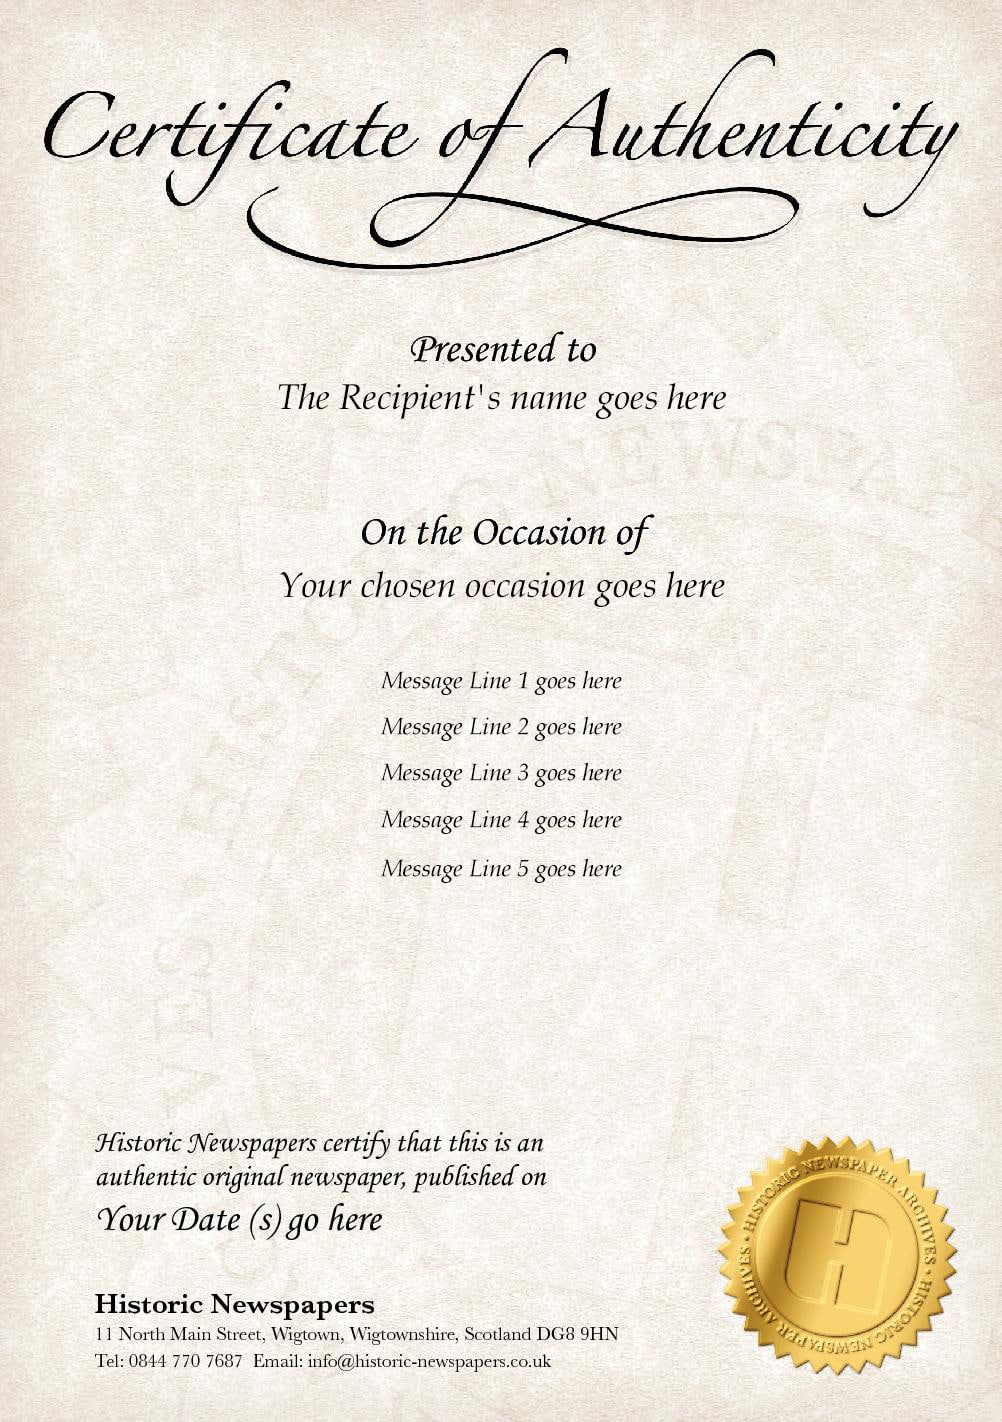 Authenticity Cert